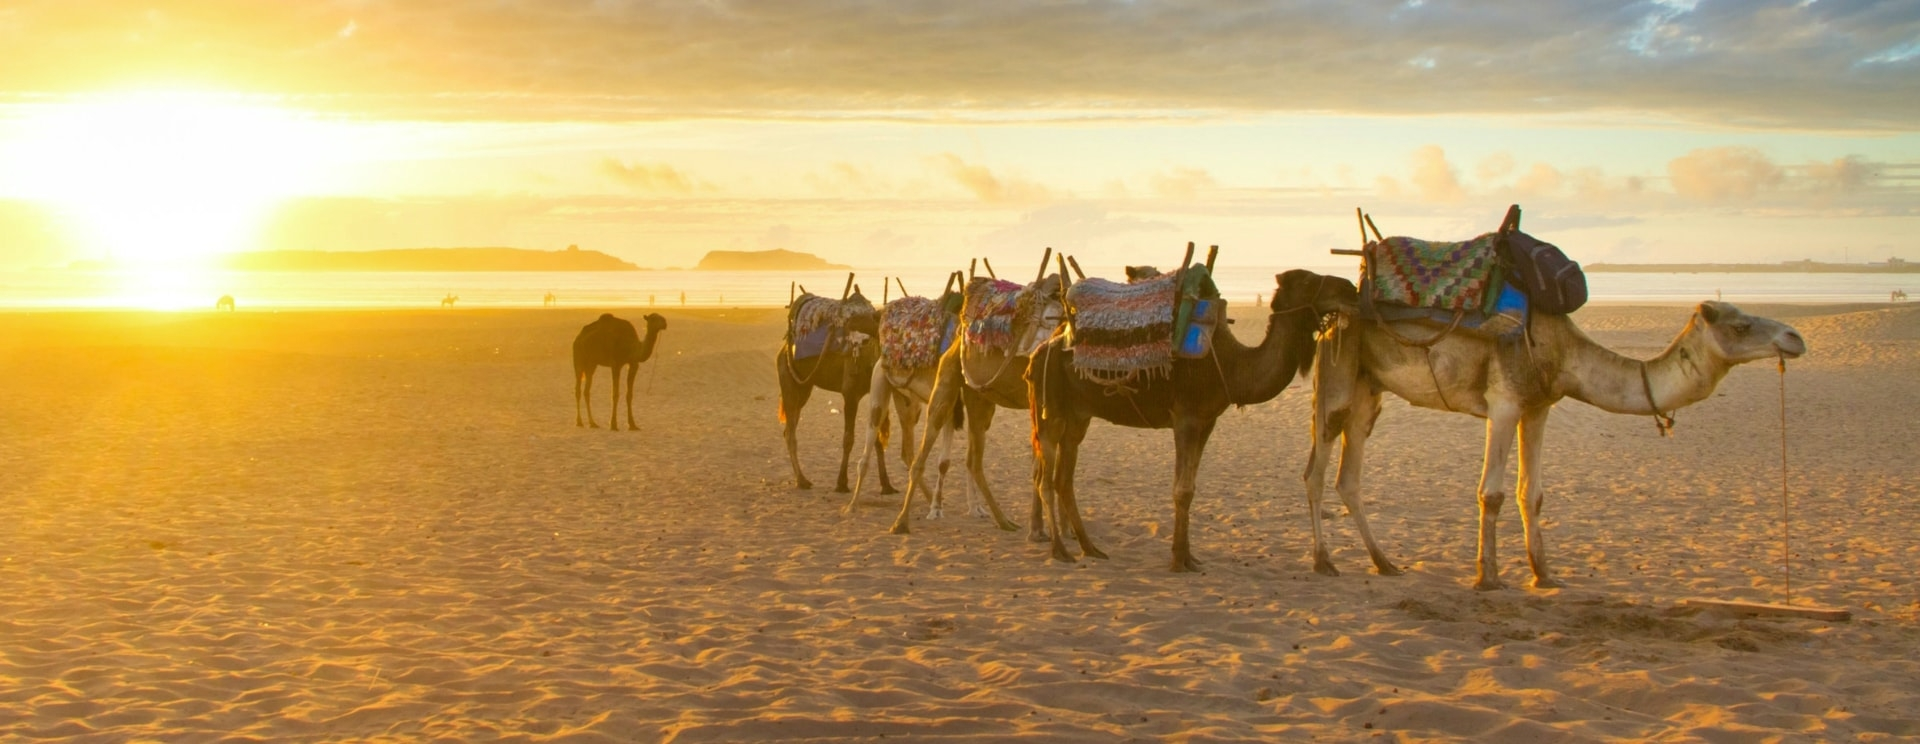 Marrakech Sahara Tour (@marrakechsaharatour) Cover Image